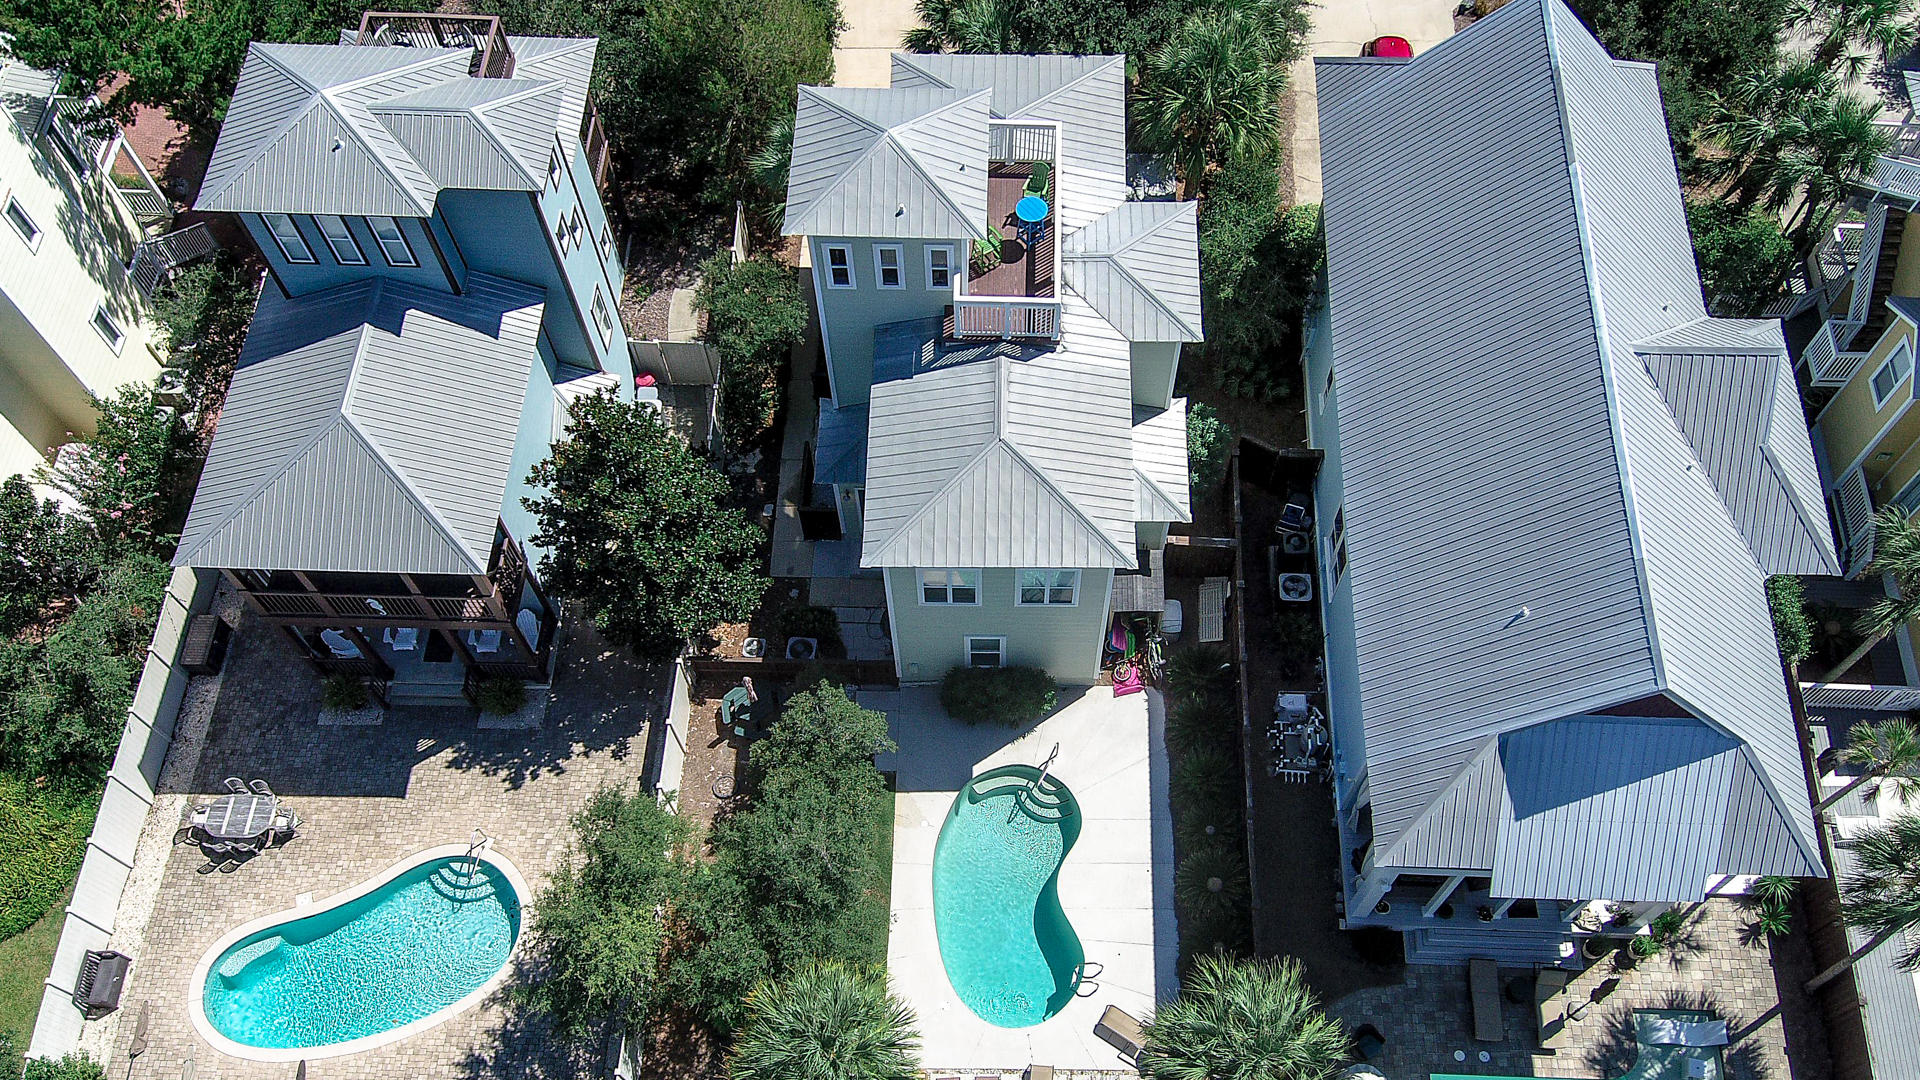 Why wait?  Gulf view home just a short distance to the beach.  Listed at current appraisal value.  Located just north of Hwy. 30A in the very popular Seagrove Beach area.  Well maintained with a private pool on a deep lot.  Home offers a first floor guest bedroom with full bath and laundry area.  The second floor has a large master suite with a private porch and an additional guest bedroom with a private sunroom.  Sunroom currently has bunk beds and sleeps another three.  The third floor is a bonus room with views of the Gulf of Mexico with a sunbather's lounging area.  Being sold mostly furnished at appraisal value.  Ask your Realtor to print out all documents for your review concerning this property.  Large Pet friendly lot.